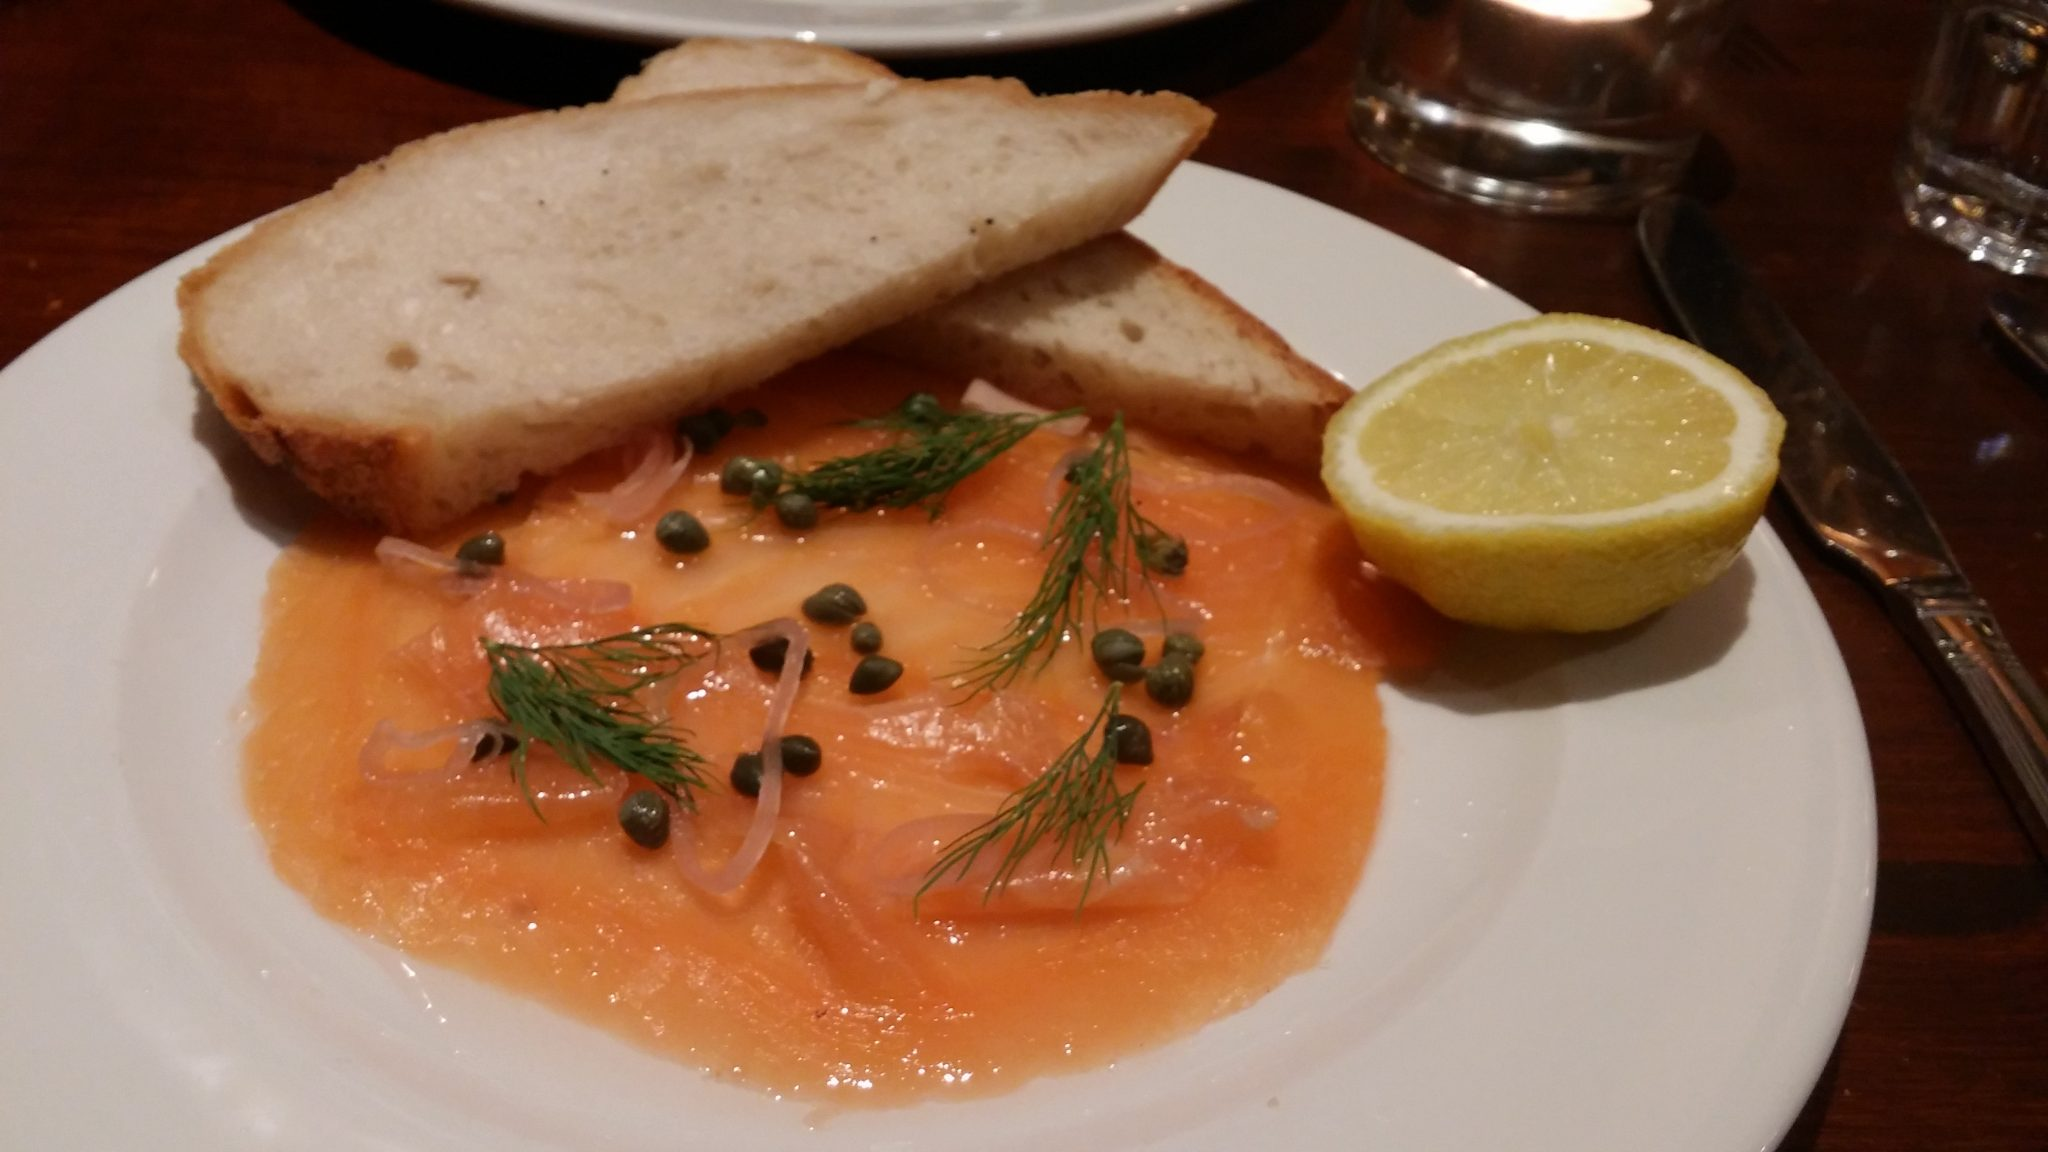 H. Foreman & Sons Scottish Smoked Salmon (with shallots, Lilliput capers, lemon), slice of sourdough.